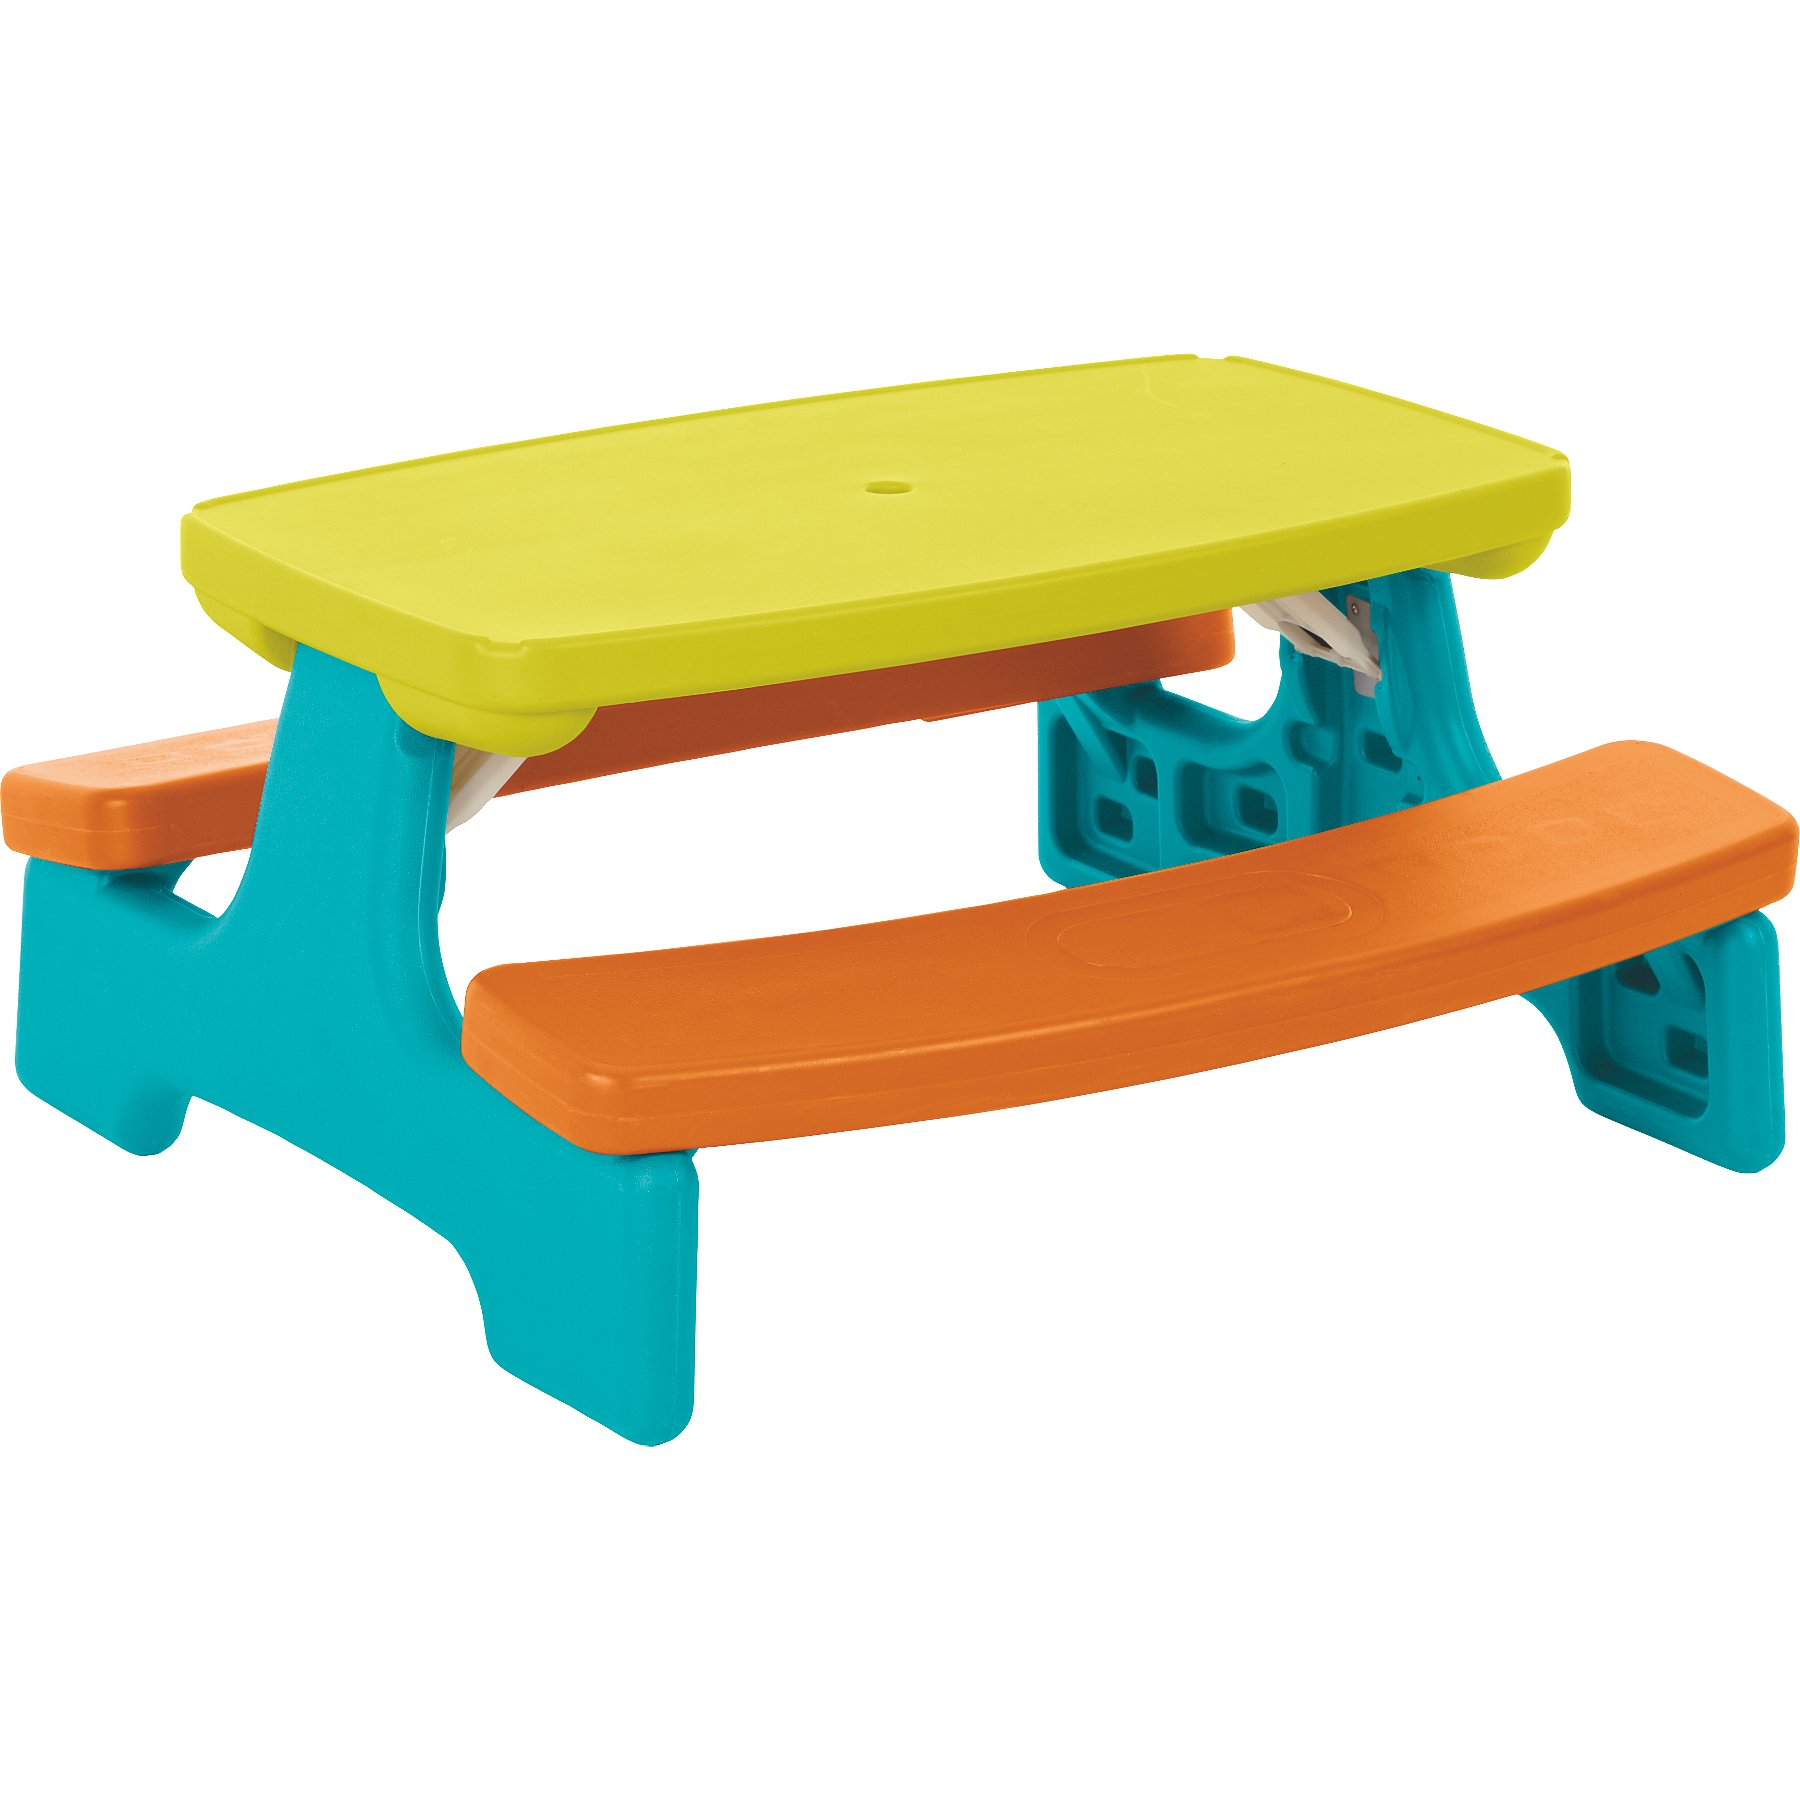 Strange Kids Large Folding Garden Table And Bench Gmtry Best Dining Table And Chair Ideas Images Gmtryco